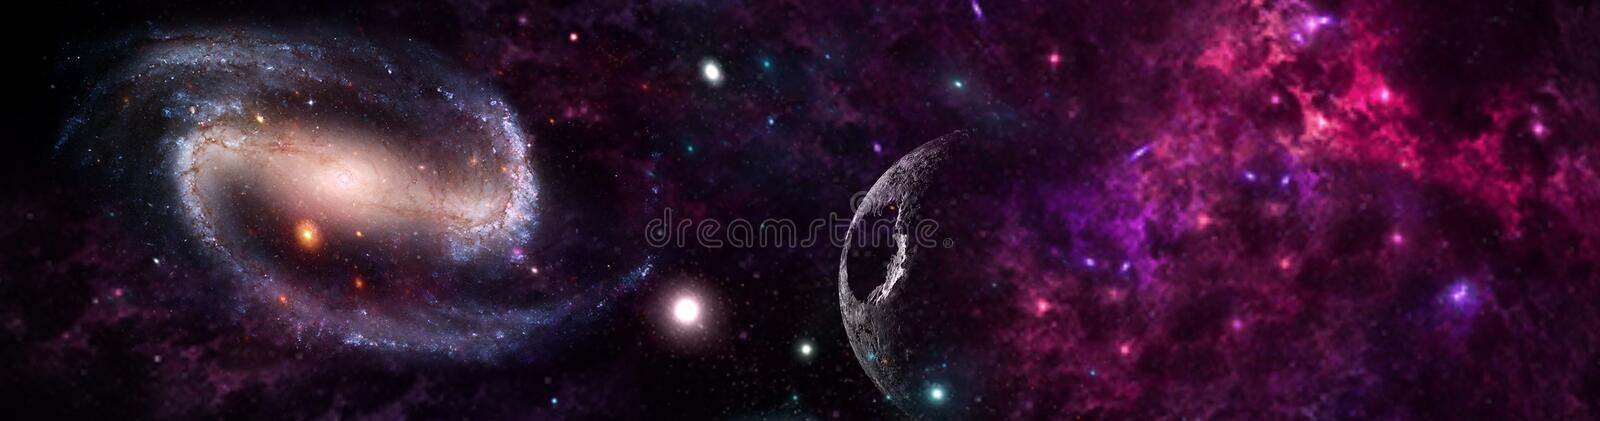 Planets and galaxy, science fiction wallpaper. Beauty of deep space. Billions of galaxy in the universe Cosmic art background stock images